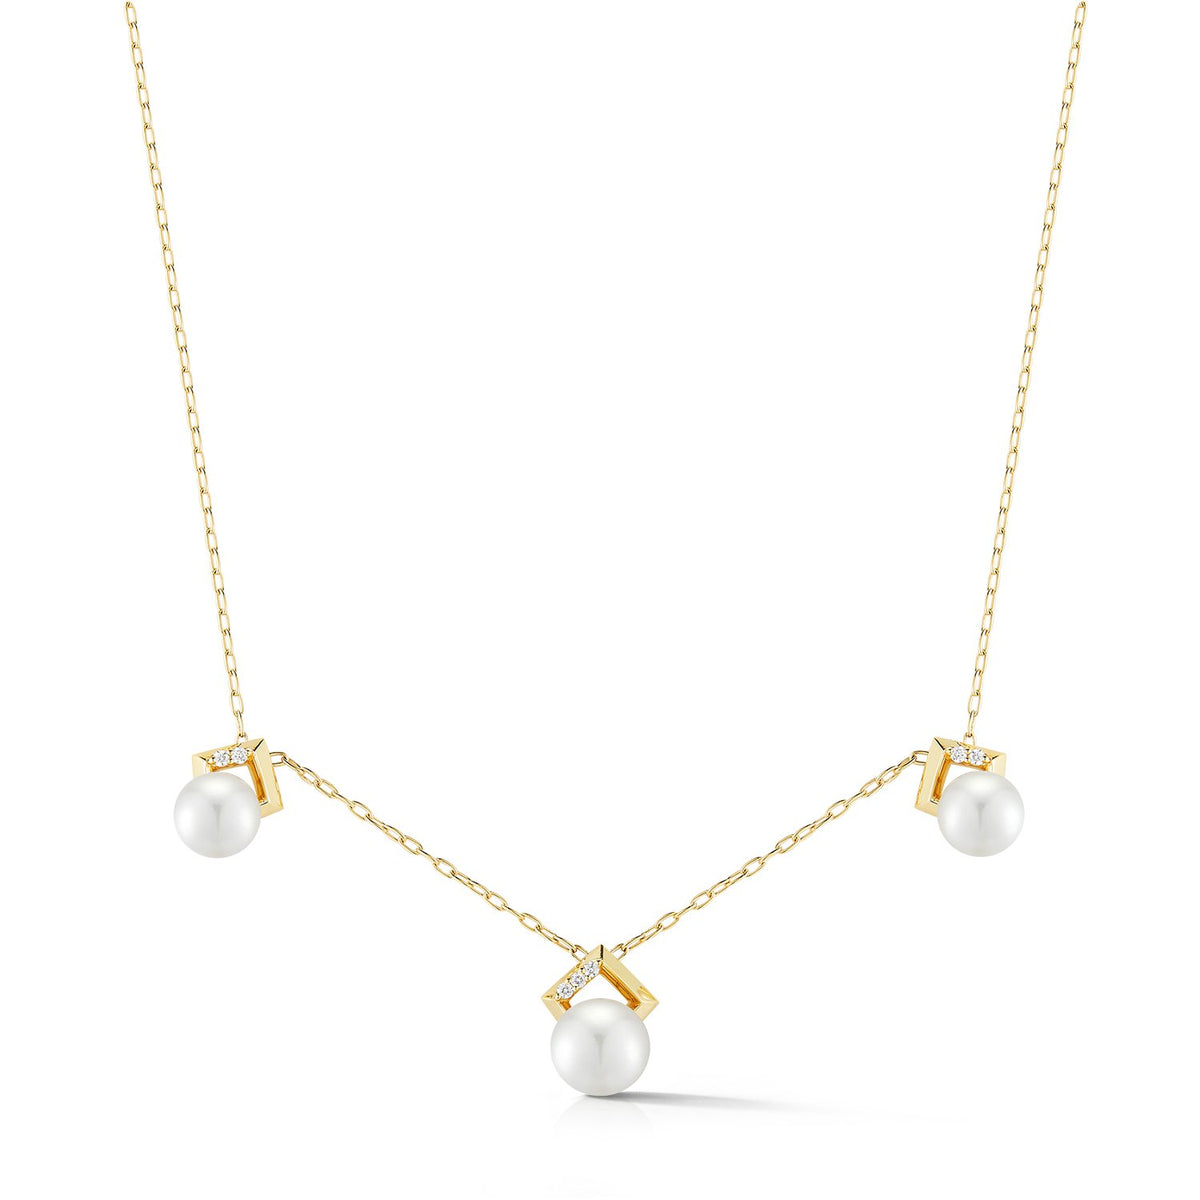 Valani 18K Yellow Gold Kharis III Pearl Necklace